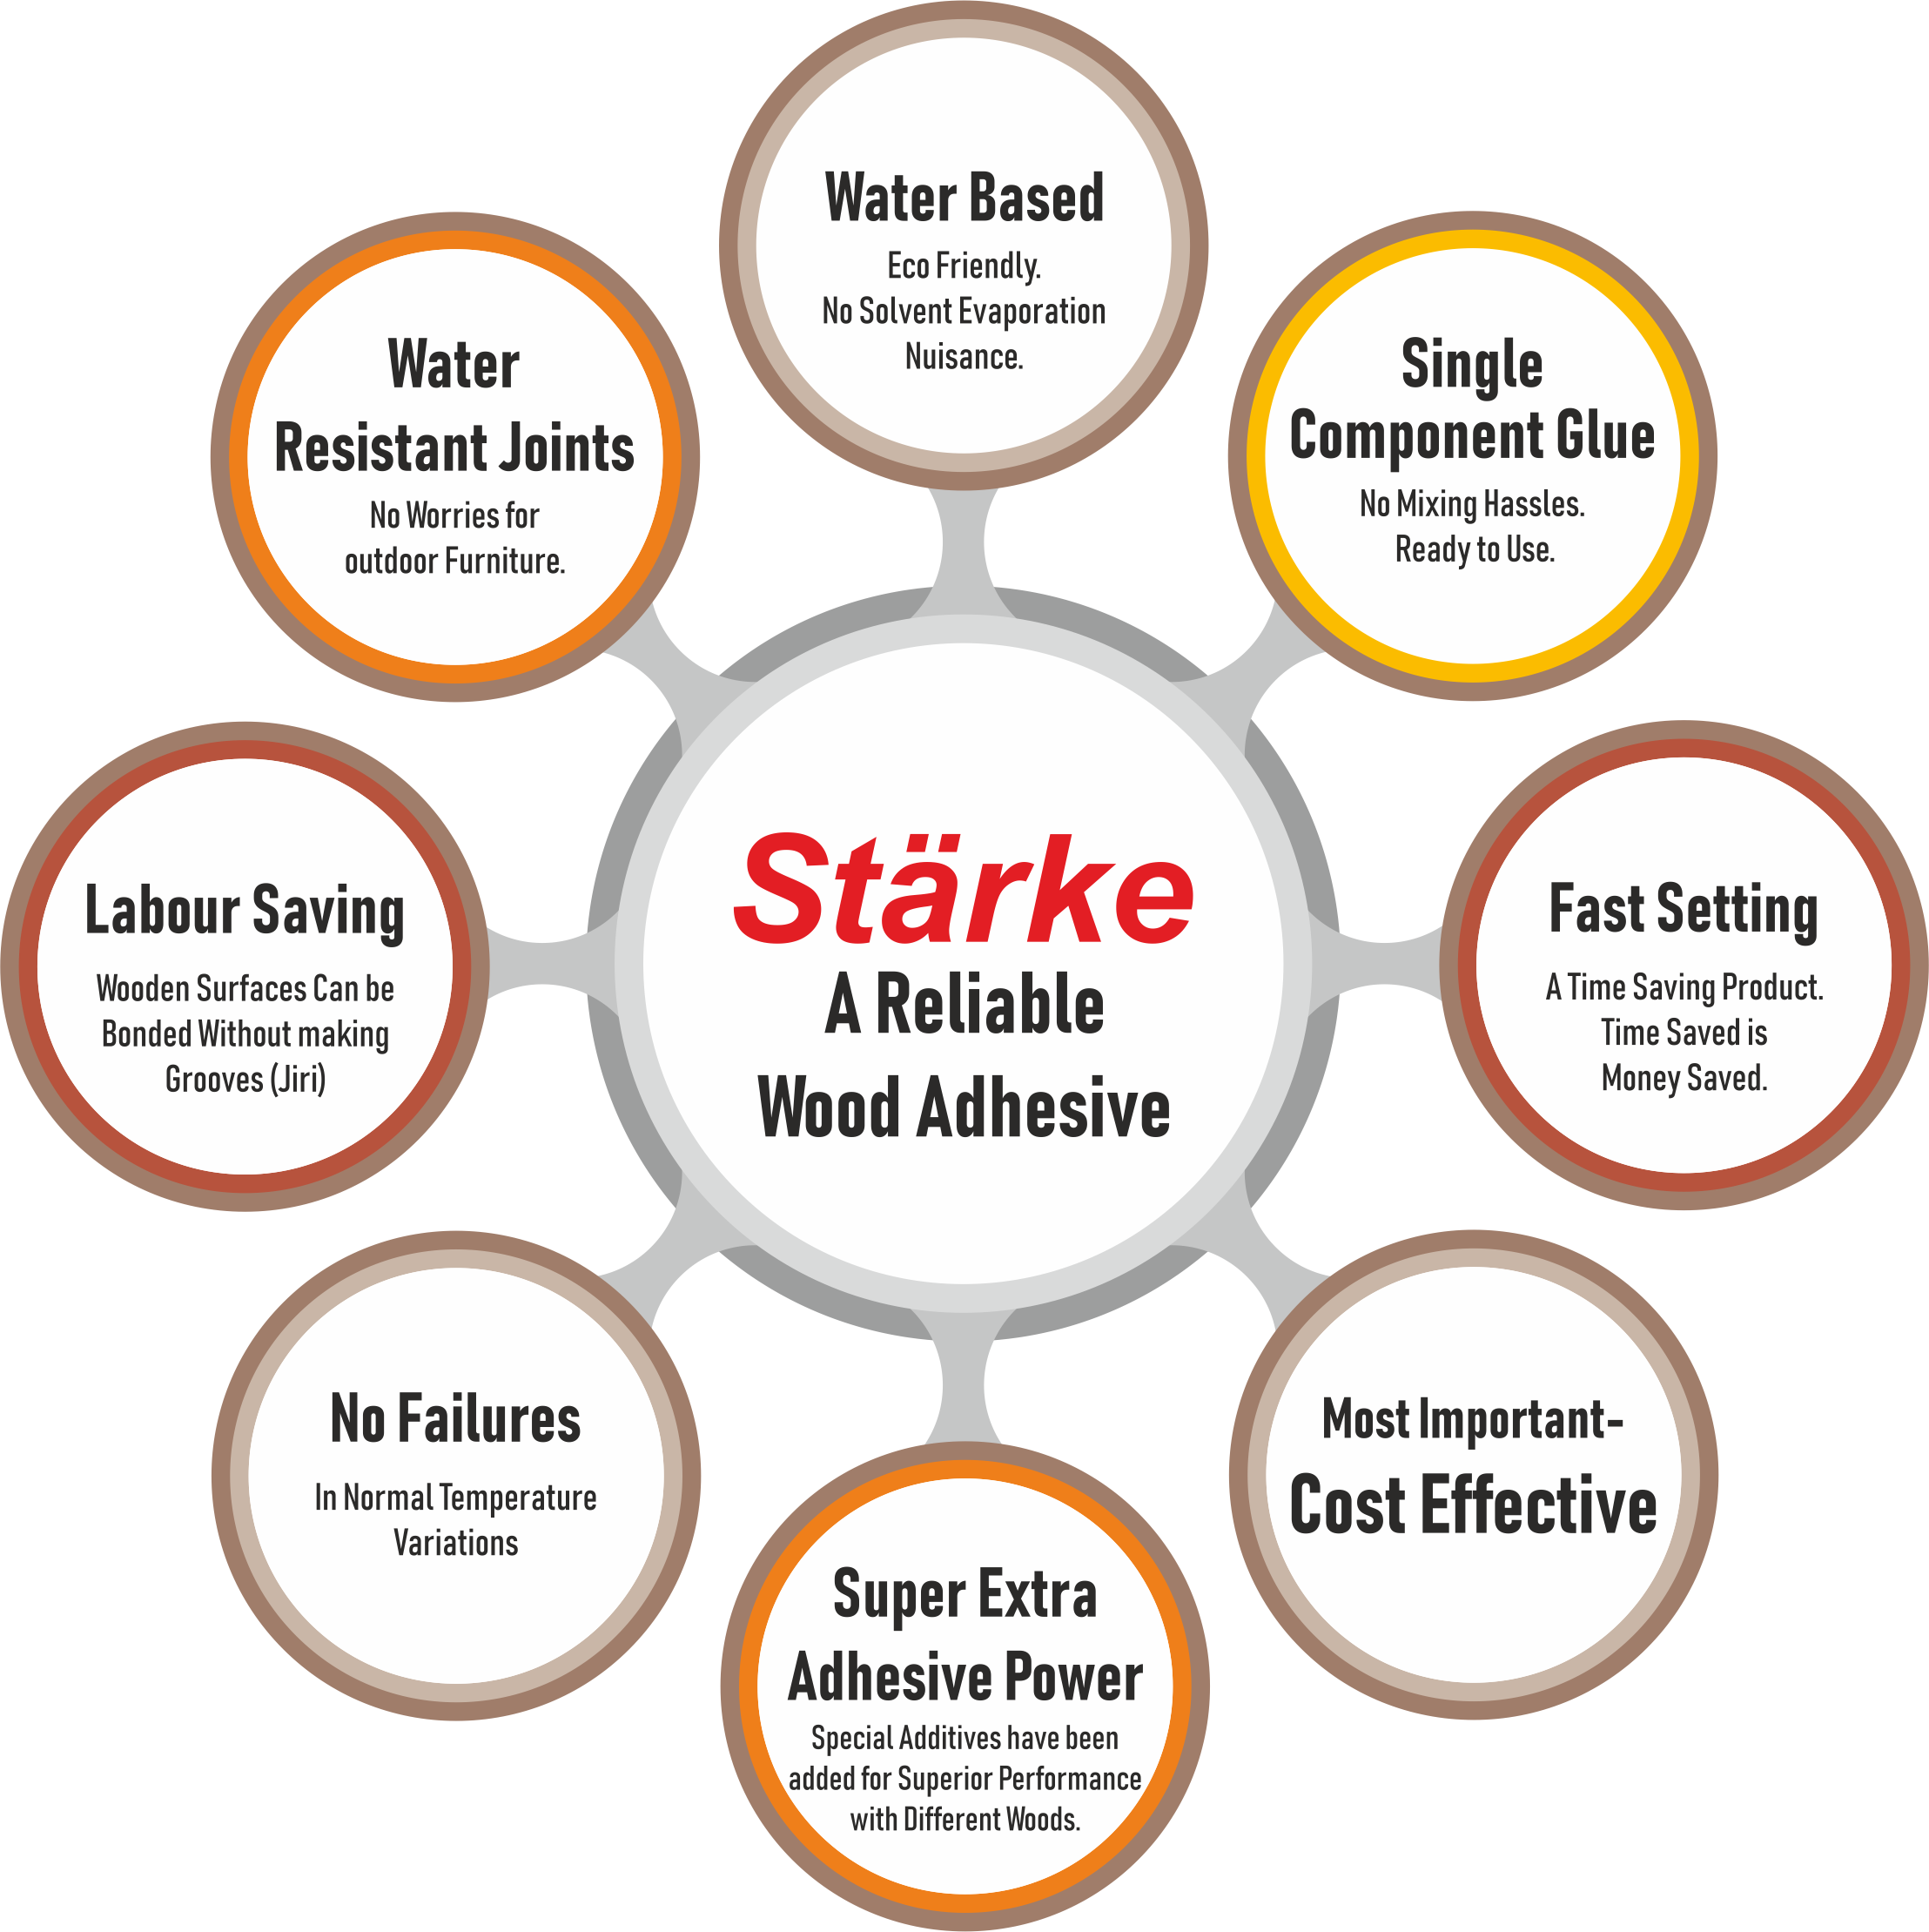 why_starke_adhesive, why_we, relieable_wood_adhesive, labour_seving, water_based, water_resist_joints